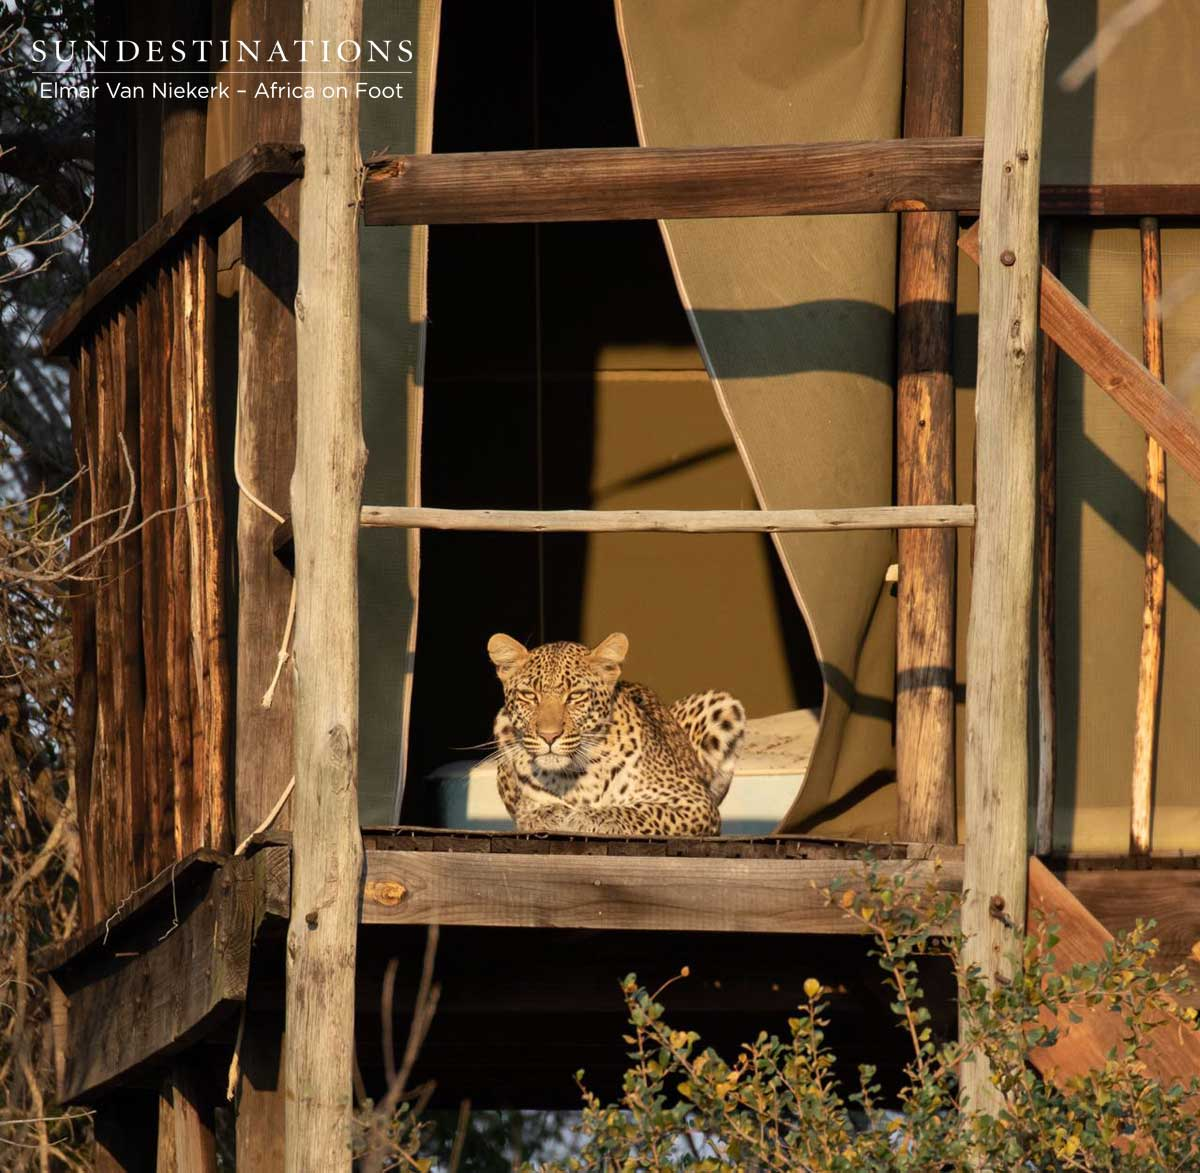 Klaserie Leopard Relaxes on the Wooden Deck of Buffel Dam Treehouse